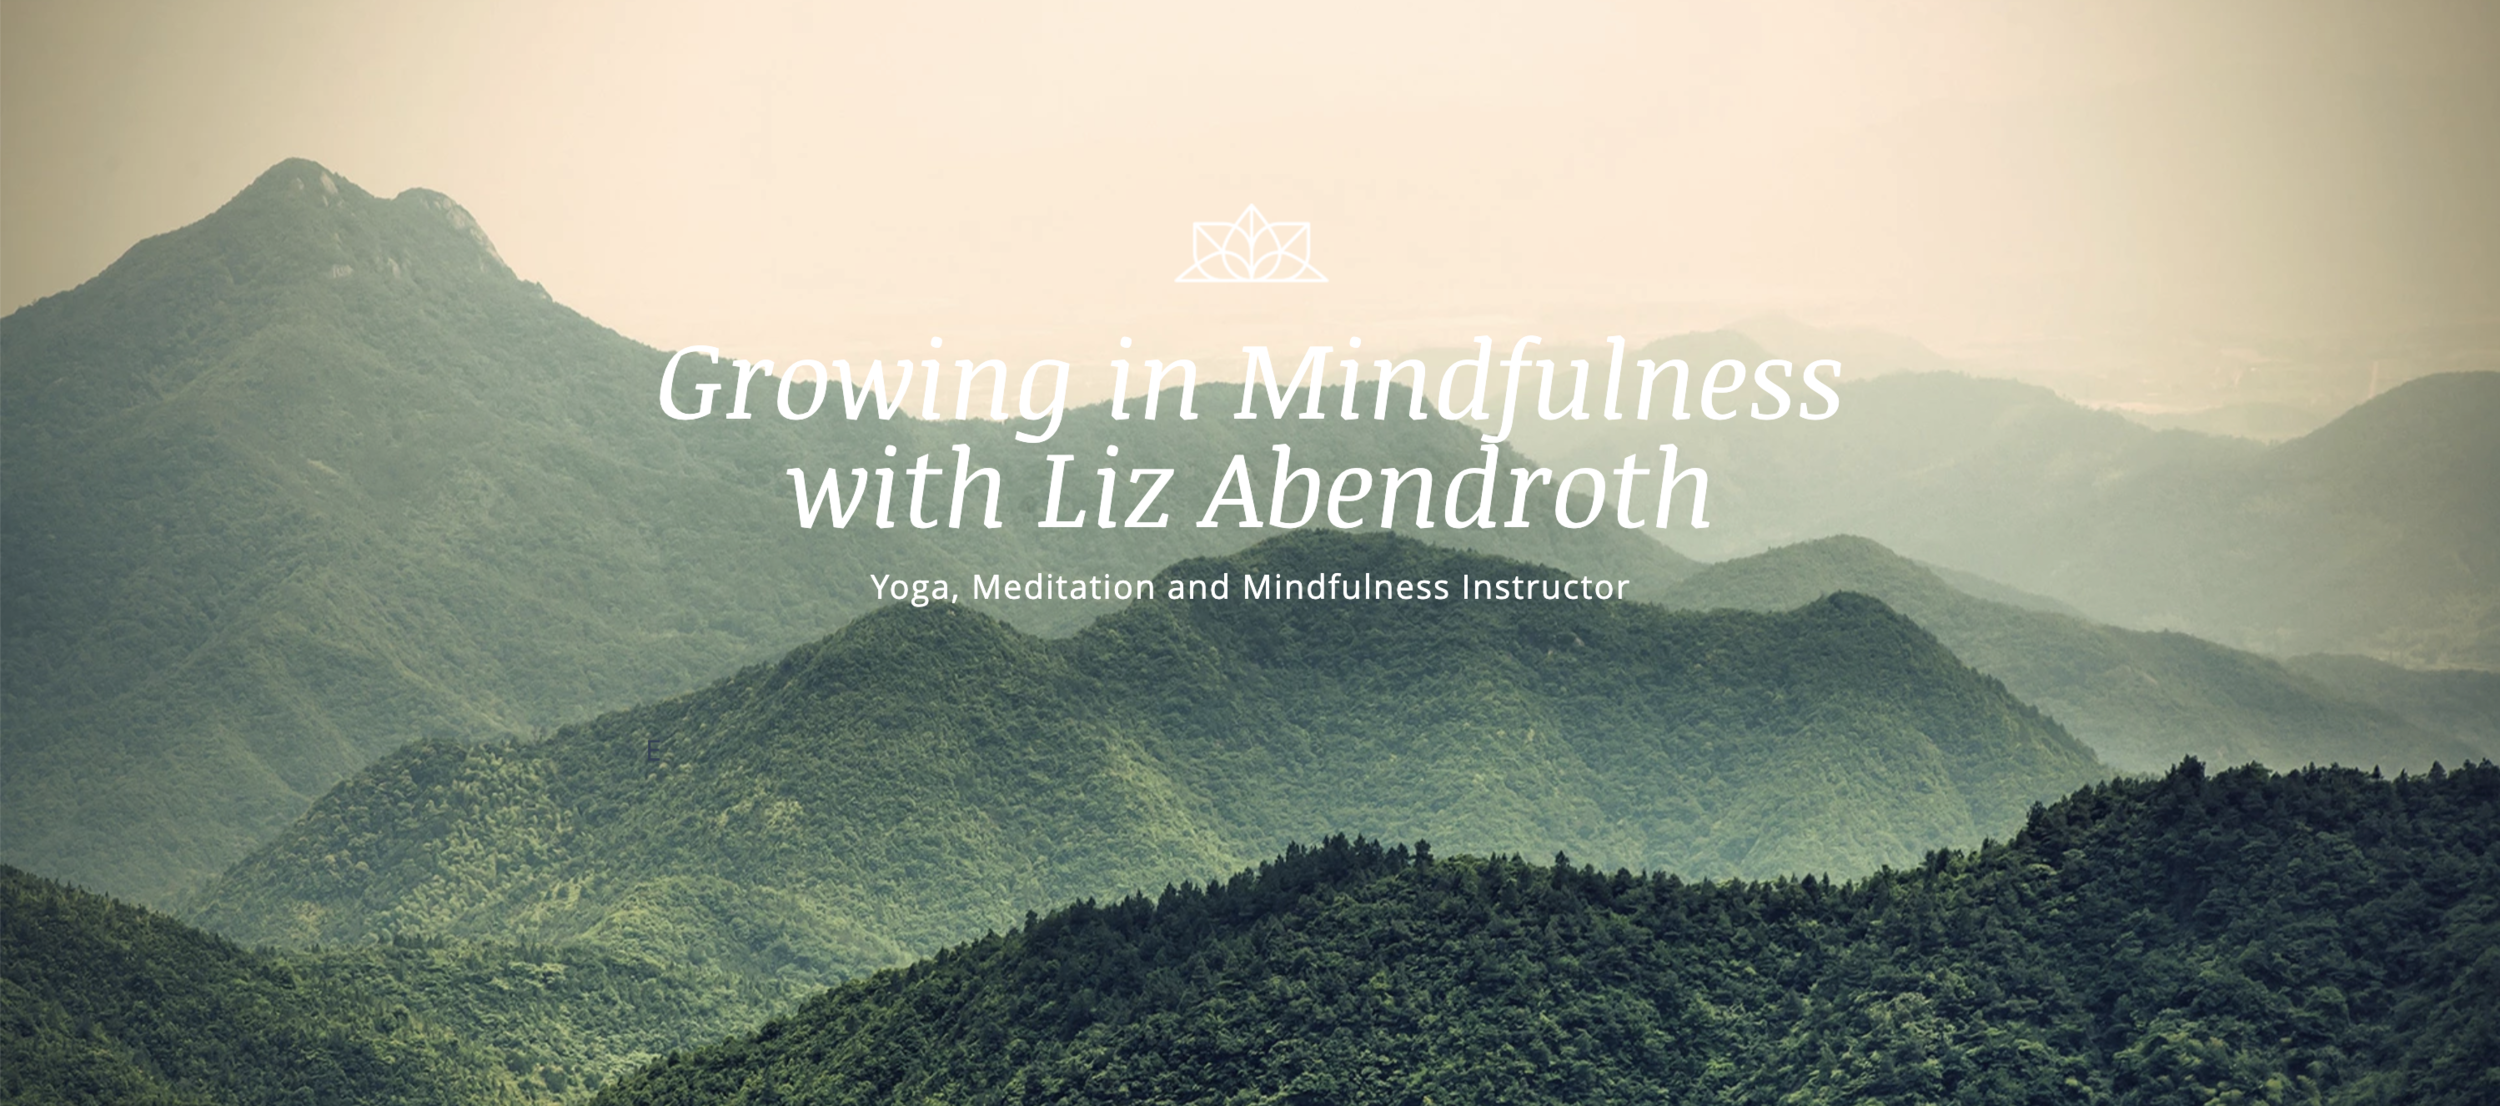 We were thrilled to have Liz from  Growing in Mindfulness  lead our Yoga & Mindfulness portion of our Tuition-free camps this past Spring!